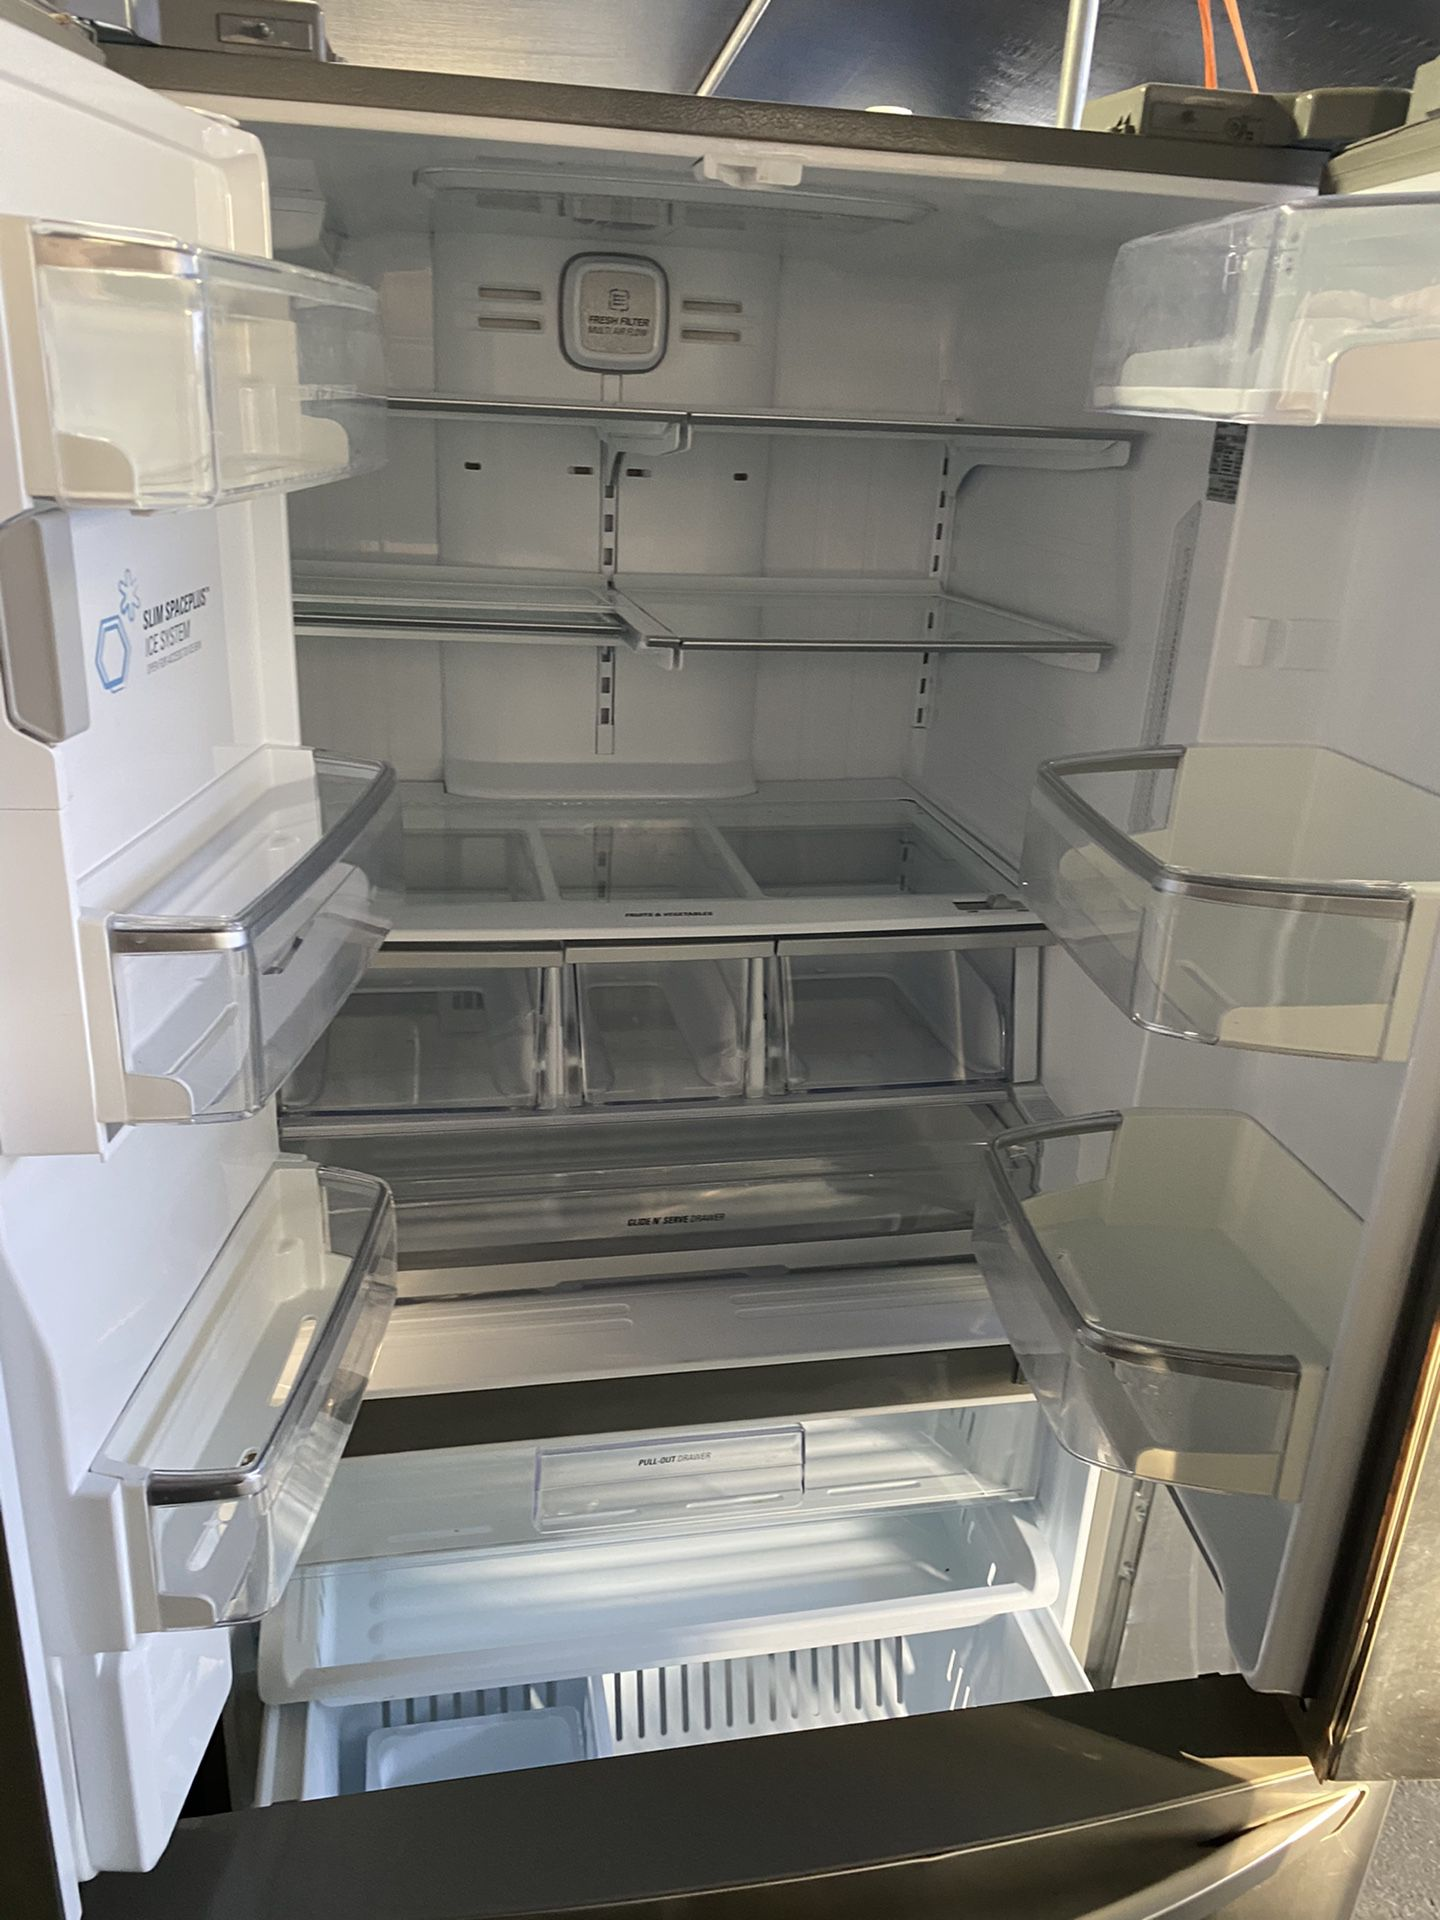 $749 LG stainless steel a French door refrigerator with delivery in the San Fernando Valley